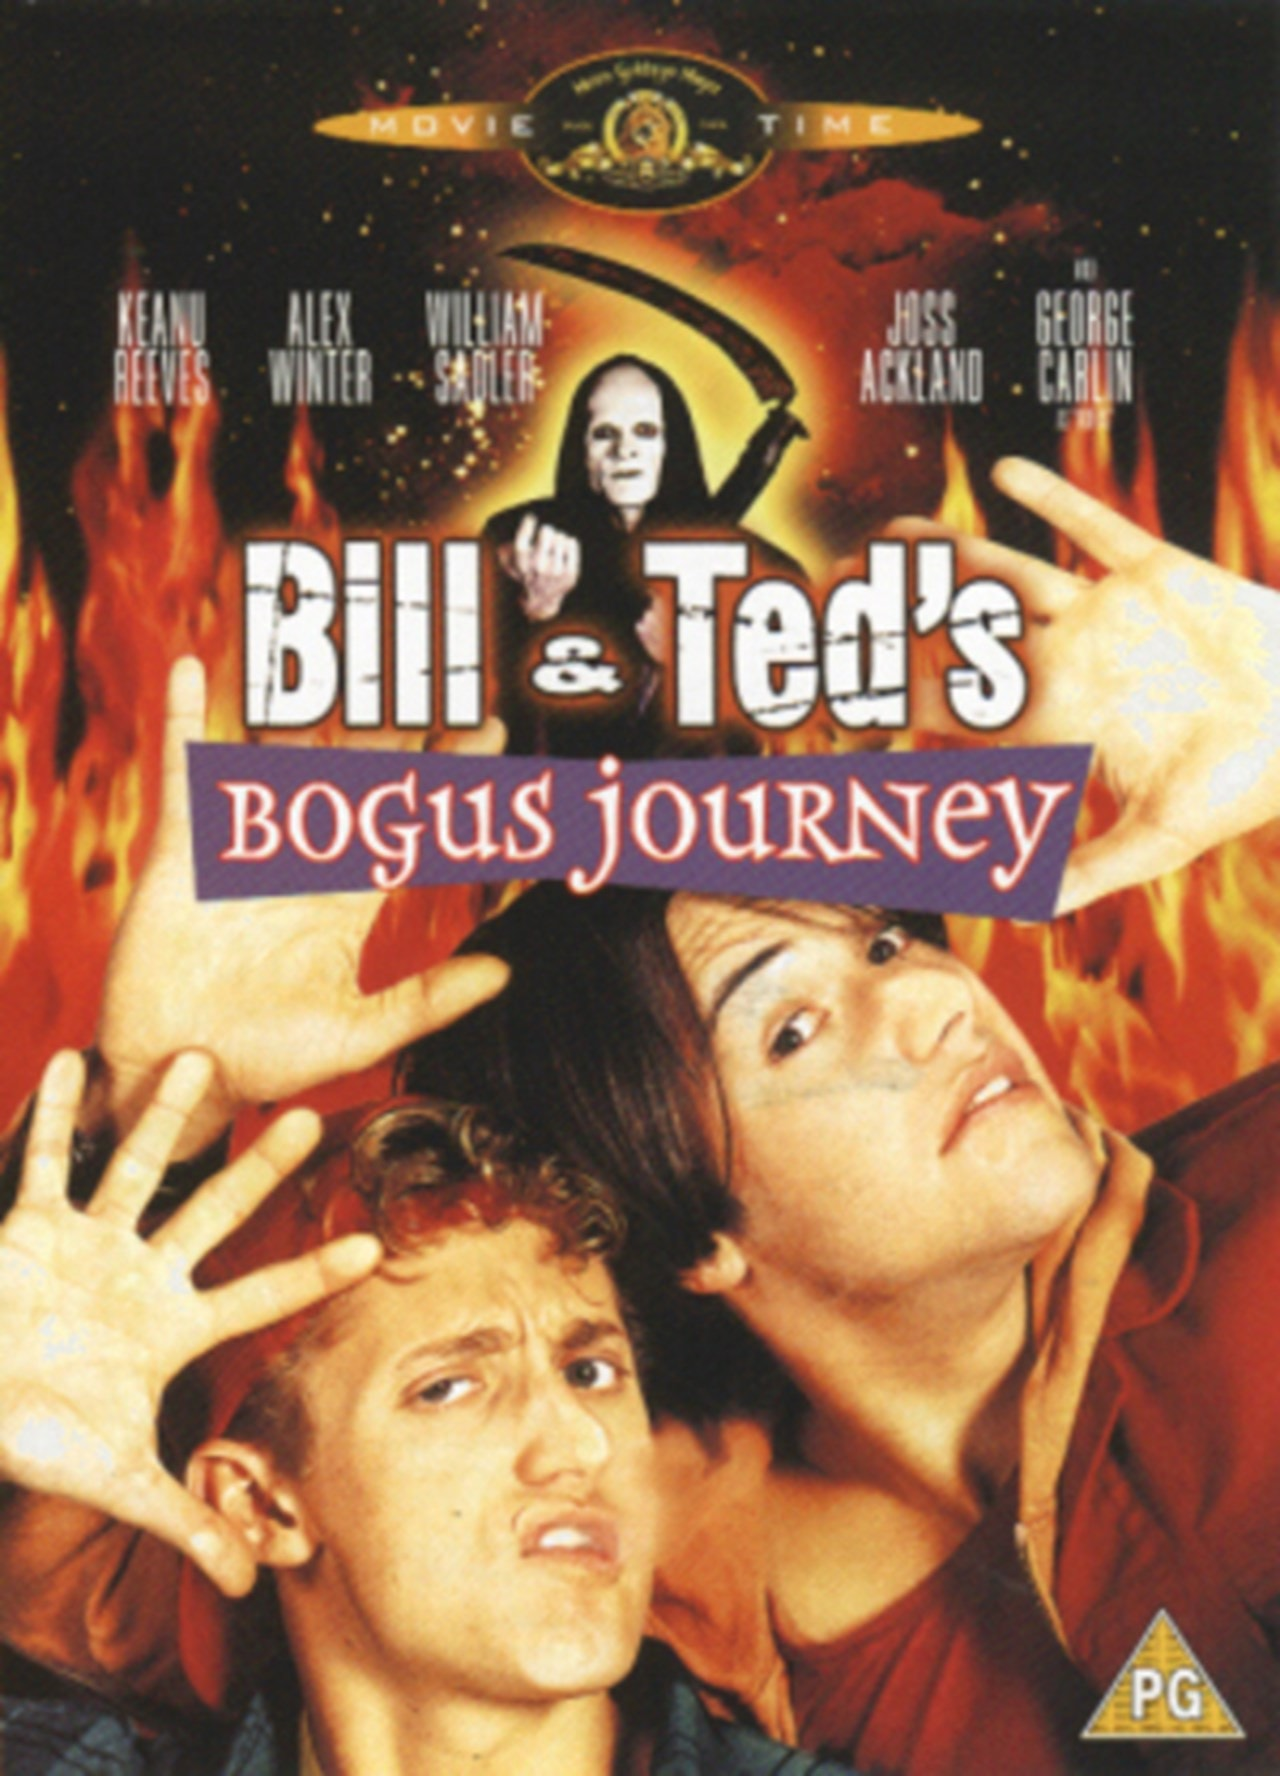 Bill & Ted's Bogus Journey - 1